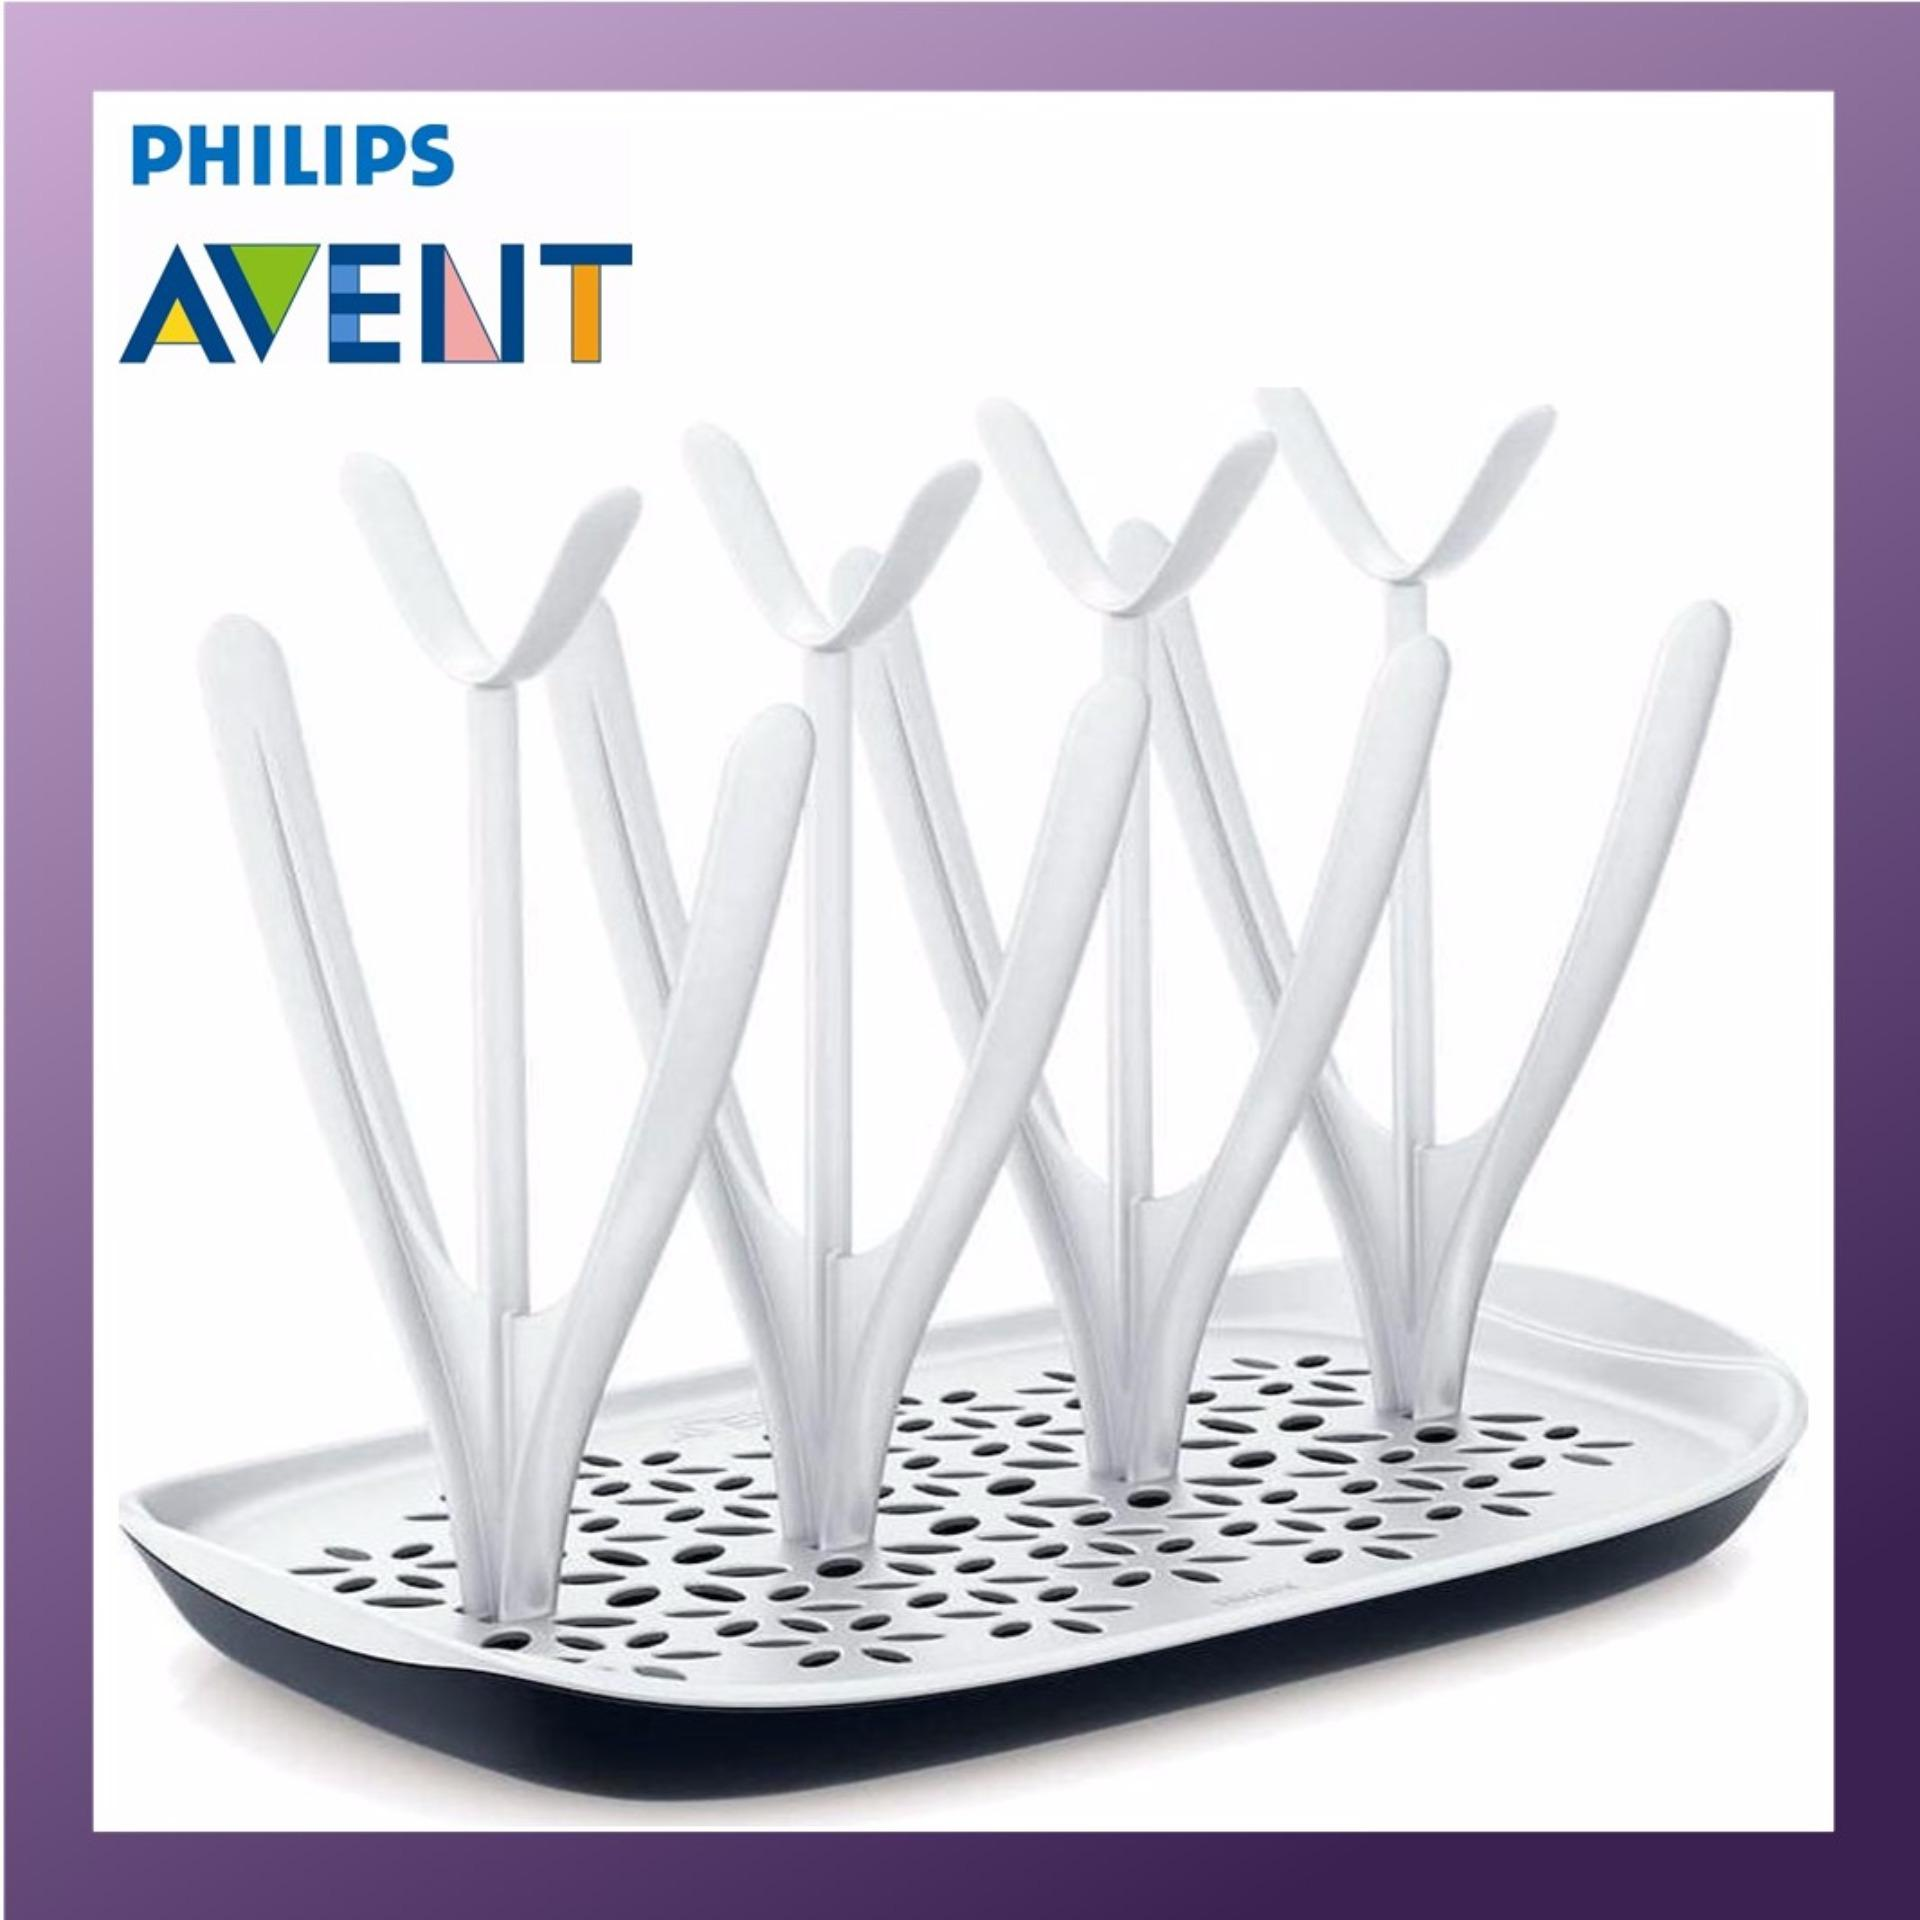 Compare Philips Avent Drying Rack Prices